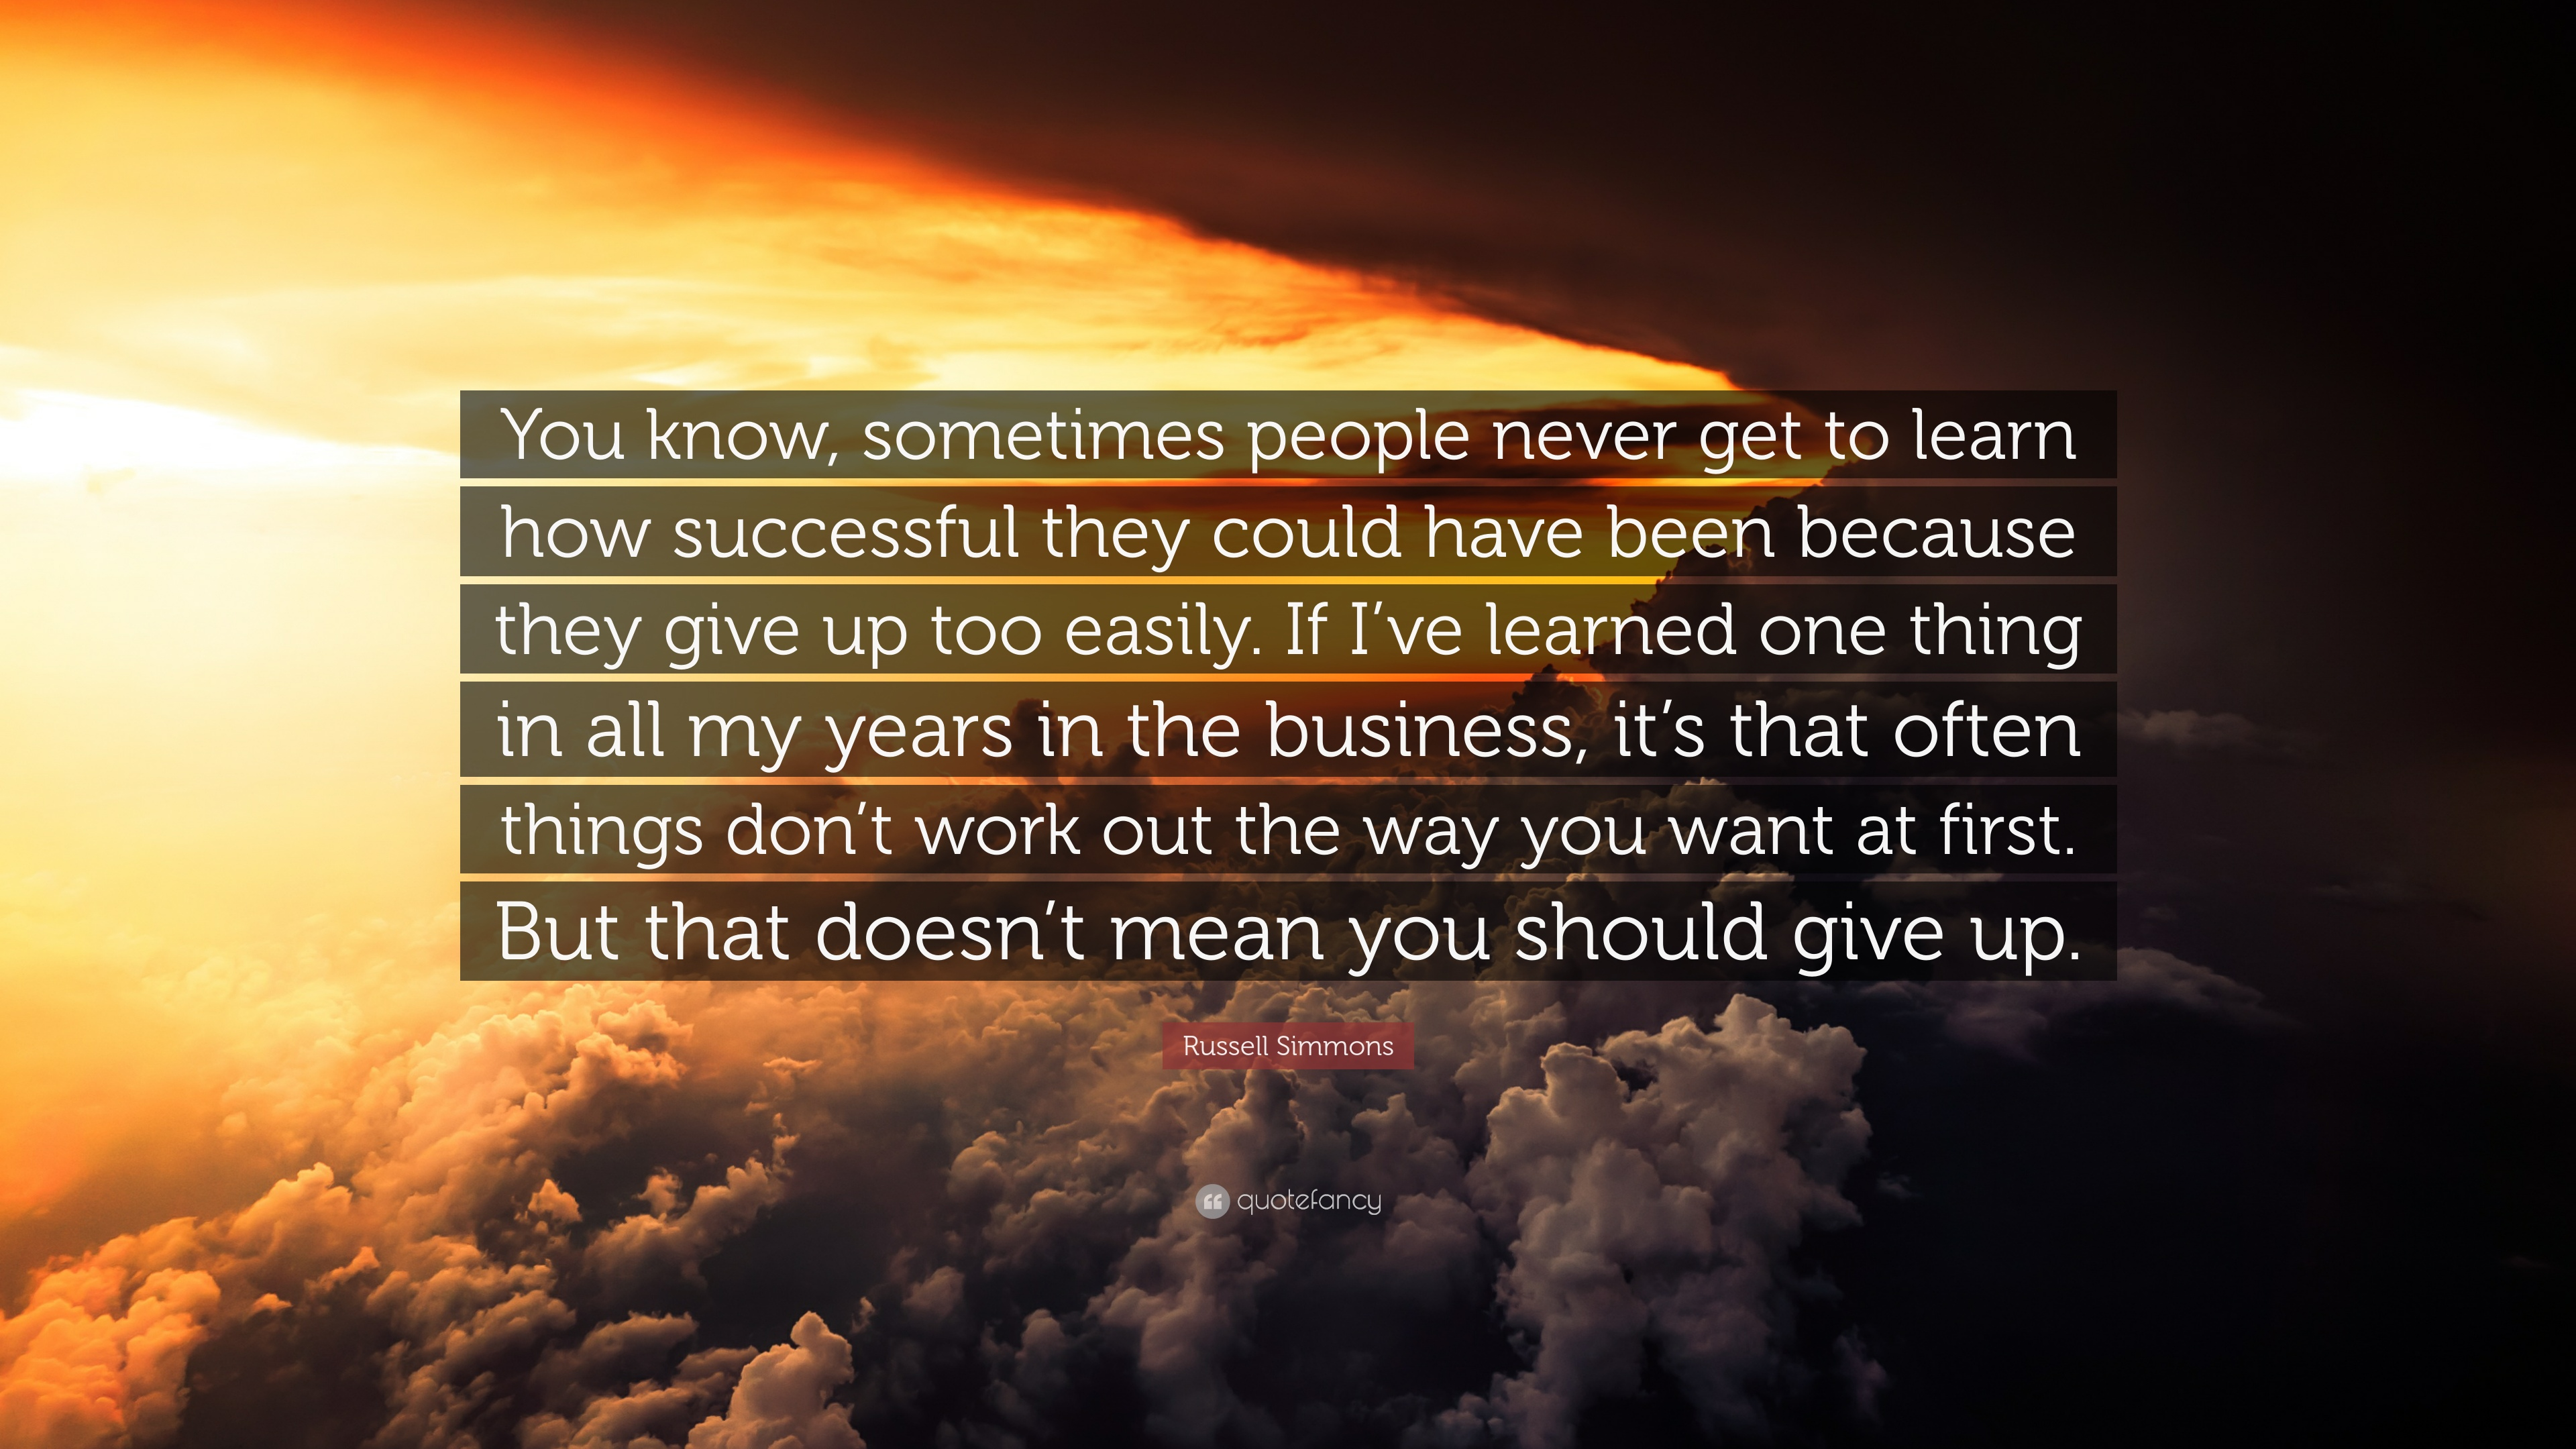 Russell Simmons Quote You Know Sometimes People Never Get To